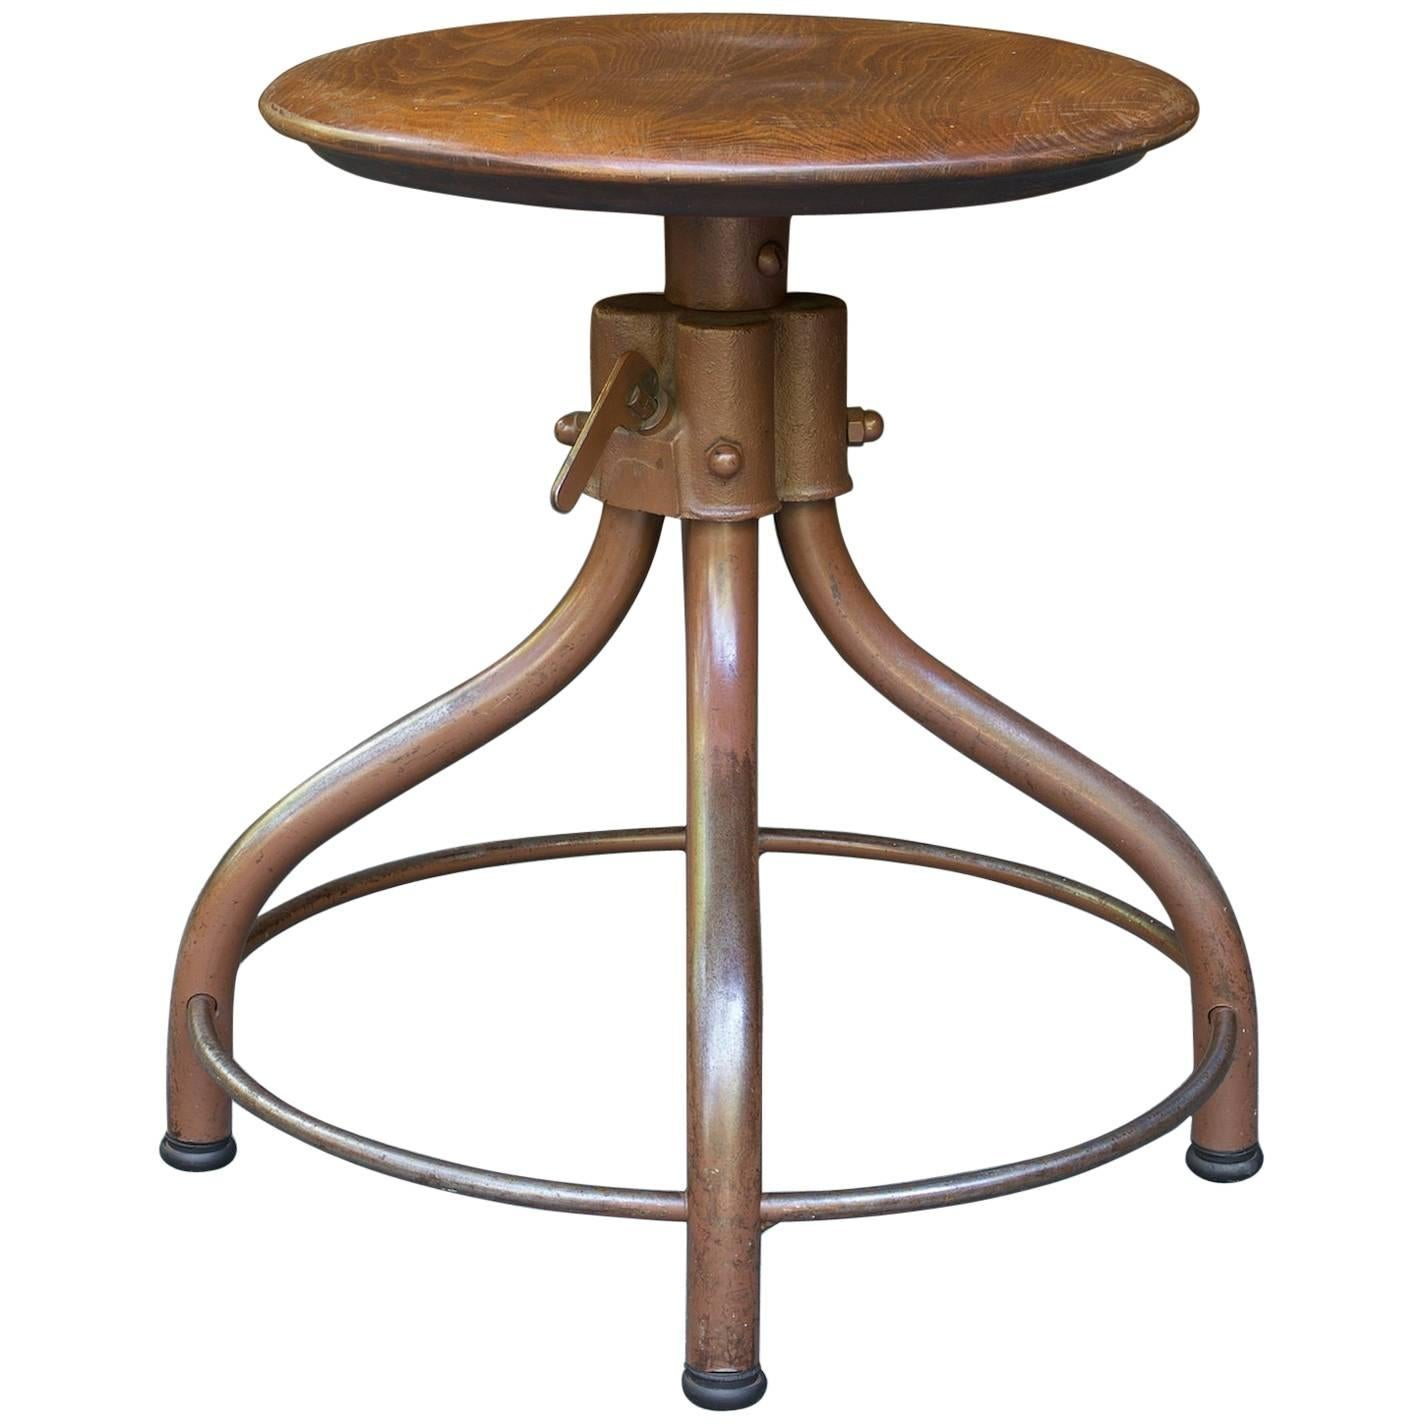 Hamilton Drafting Stool 1  sc 1 st  1stDibs & Hamilton Drafting Stool For Sale at 1stdibs islam-shia.org